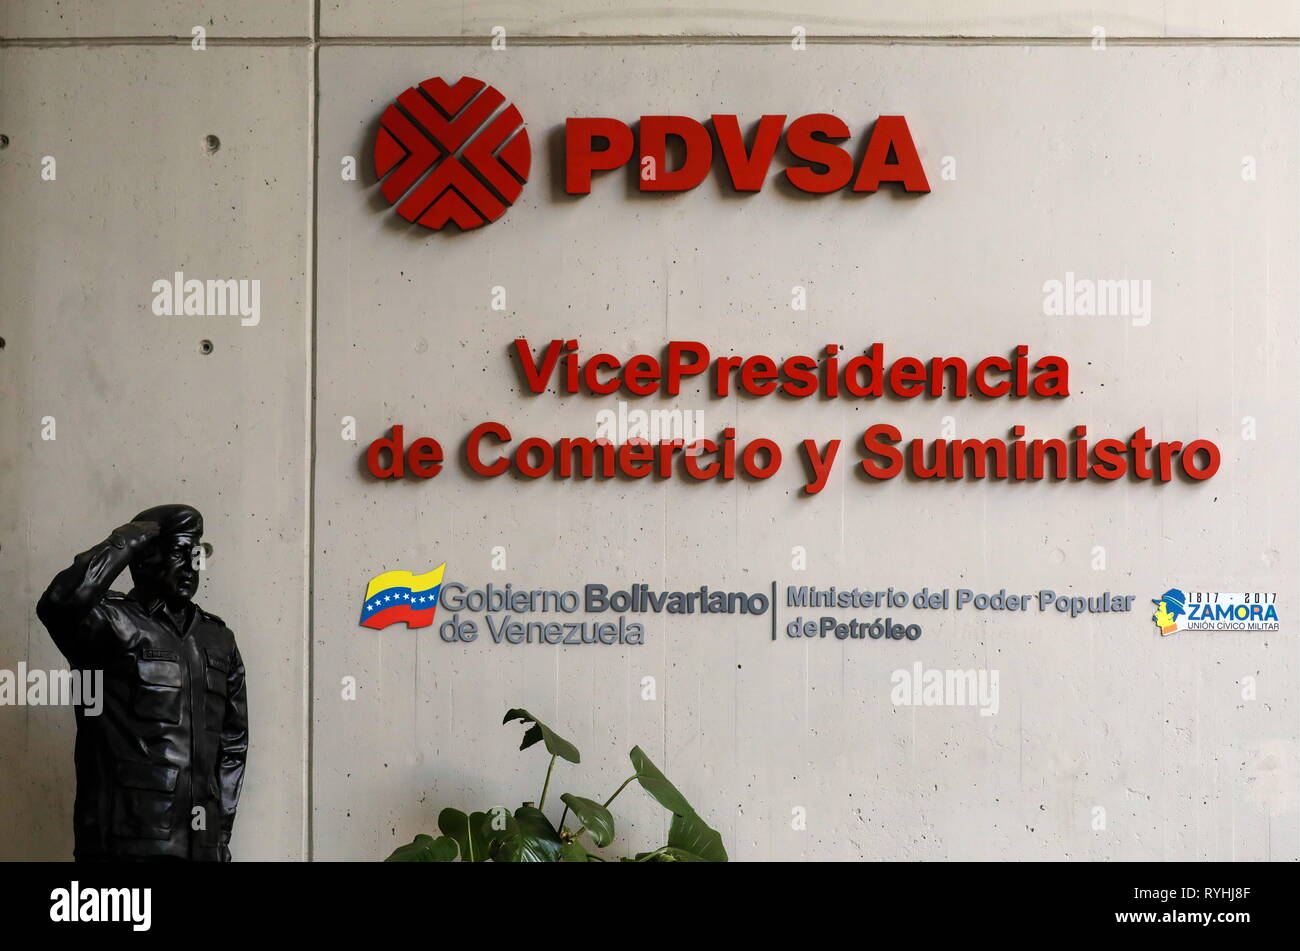 Caracas, Venezuela. 13th Mar, 2019. CARACAS, VENEZUELA - MARCH 13, 2019: Inside the PDVSA (Petroleo de Venezuela SA) building in Caracas. In the evening on March 7 Caracas and the most states of Venezuela experienced power outages the authorities blamed on cyber-sabotage against the Simon Bolivar Hydroelectric Power Plant. Valery Sharifulin/TASS Credit: ITAR-TASS News Agency/Alamy Live News Stock Photo